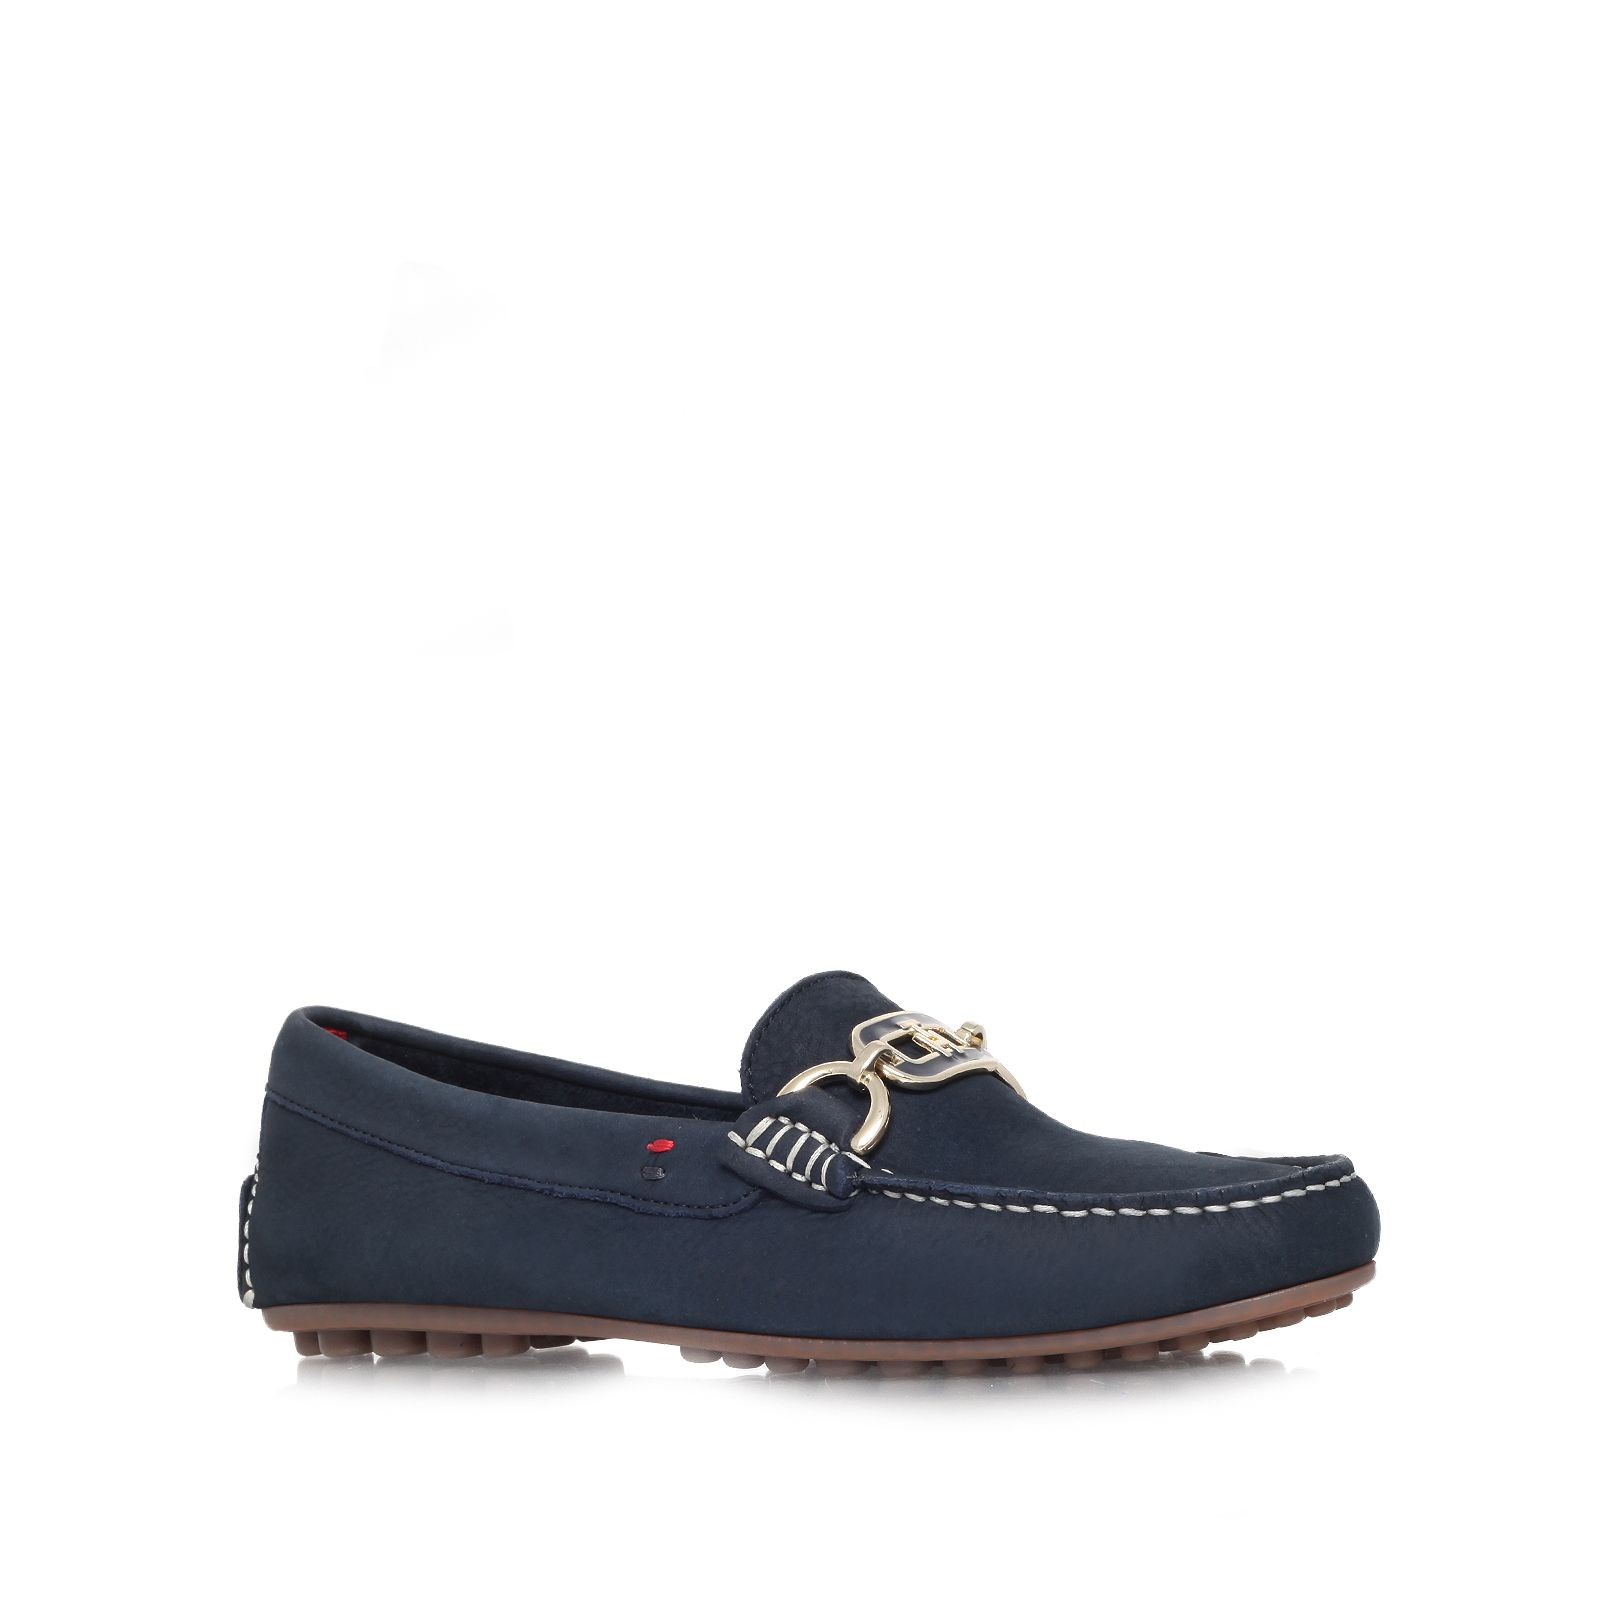 Kendall 5n flat loafer shoes